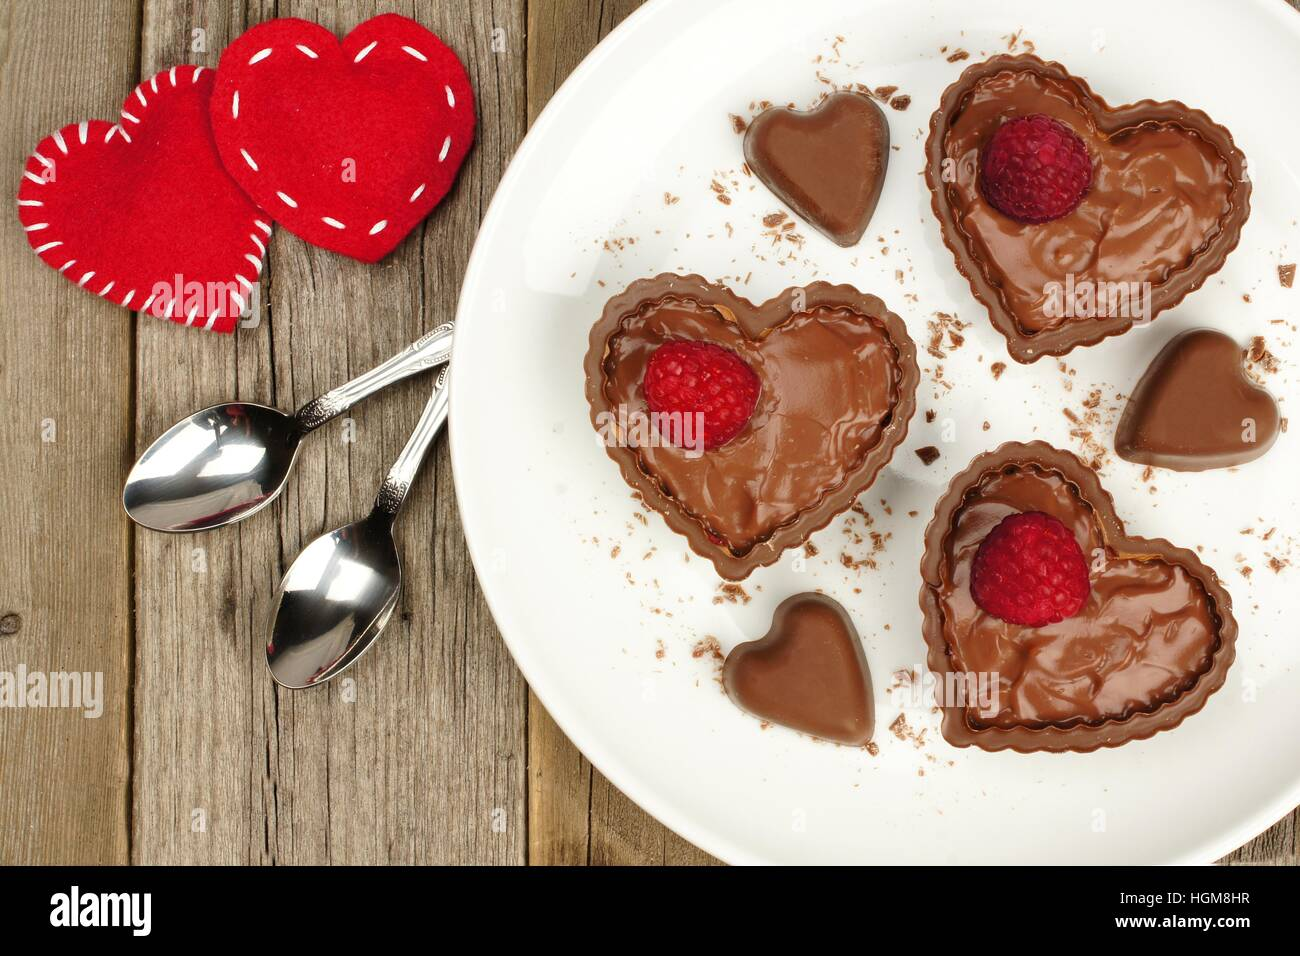 Heart shaped chocolate dessert cups with pudding and raspberries on plate with wood background - Stock Image